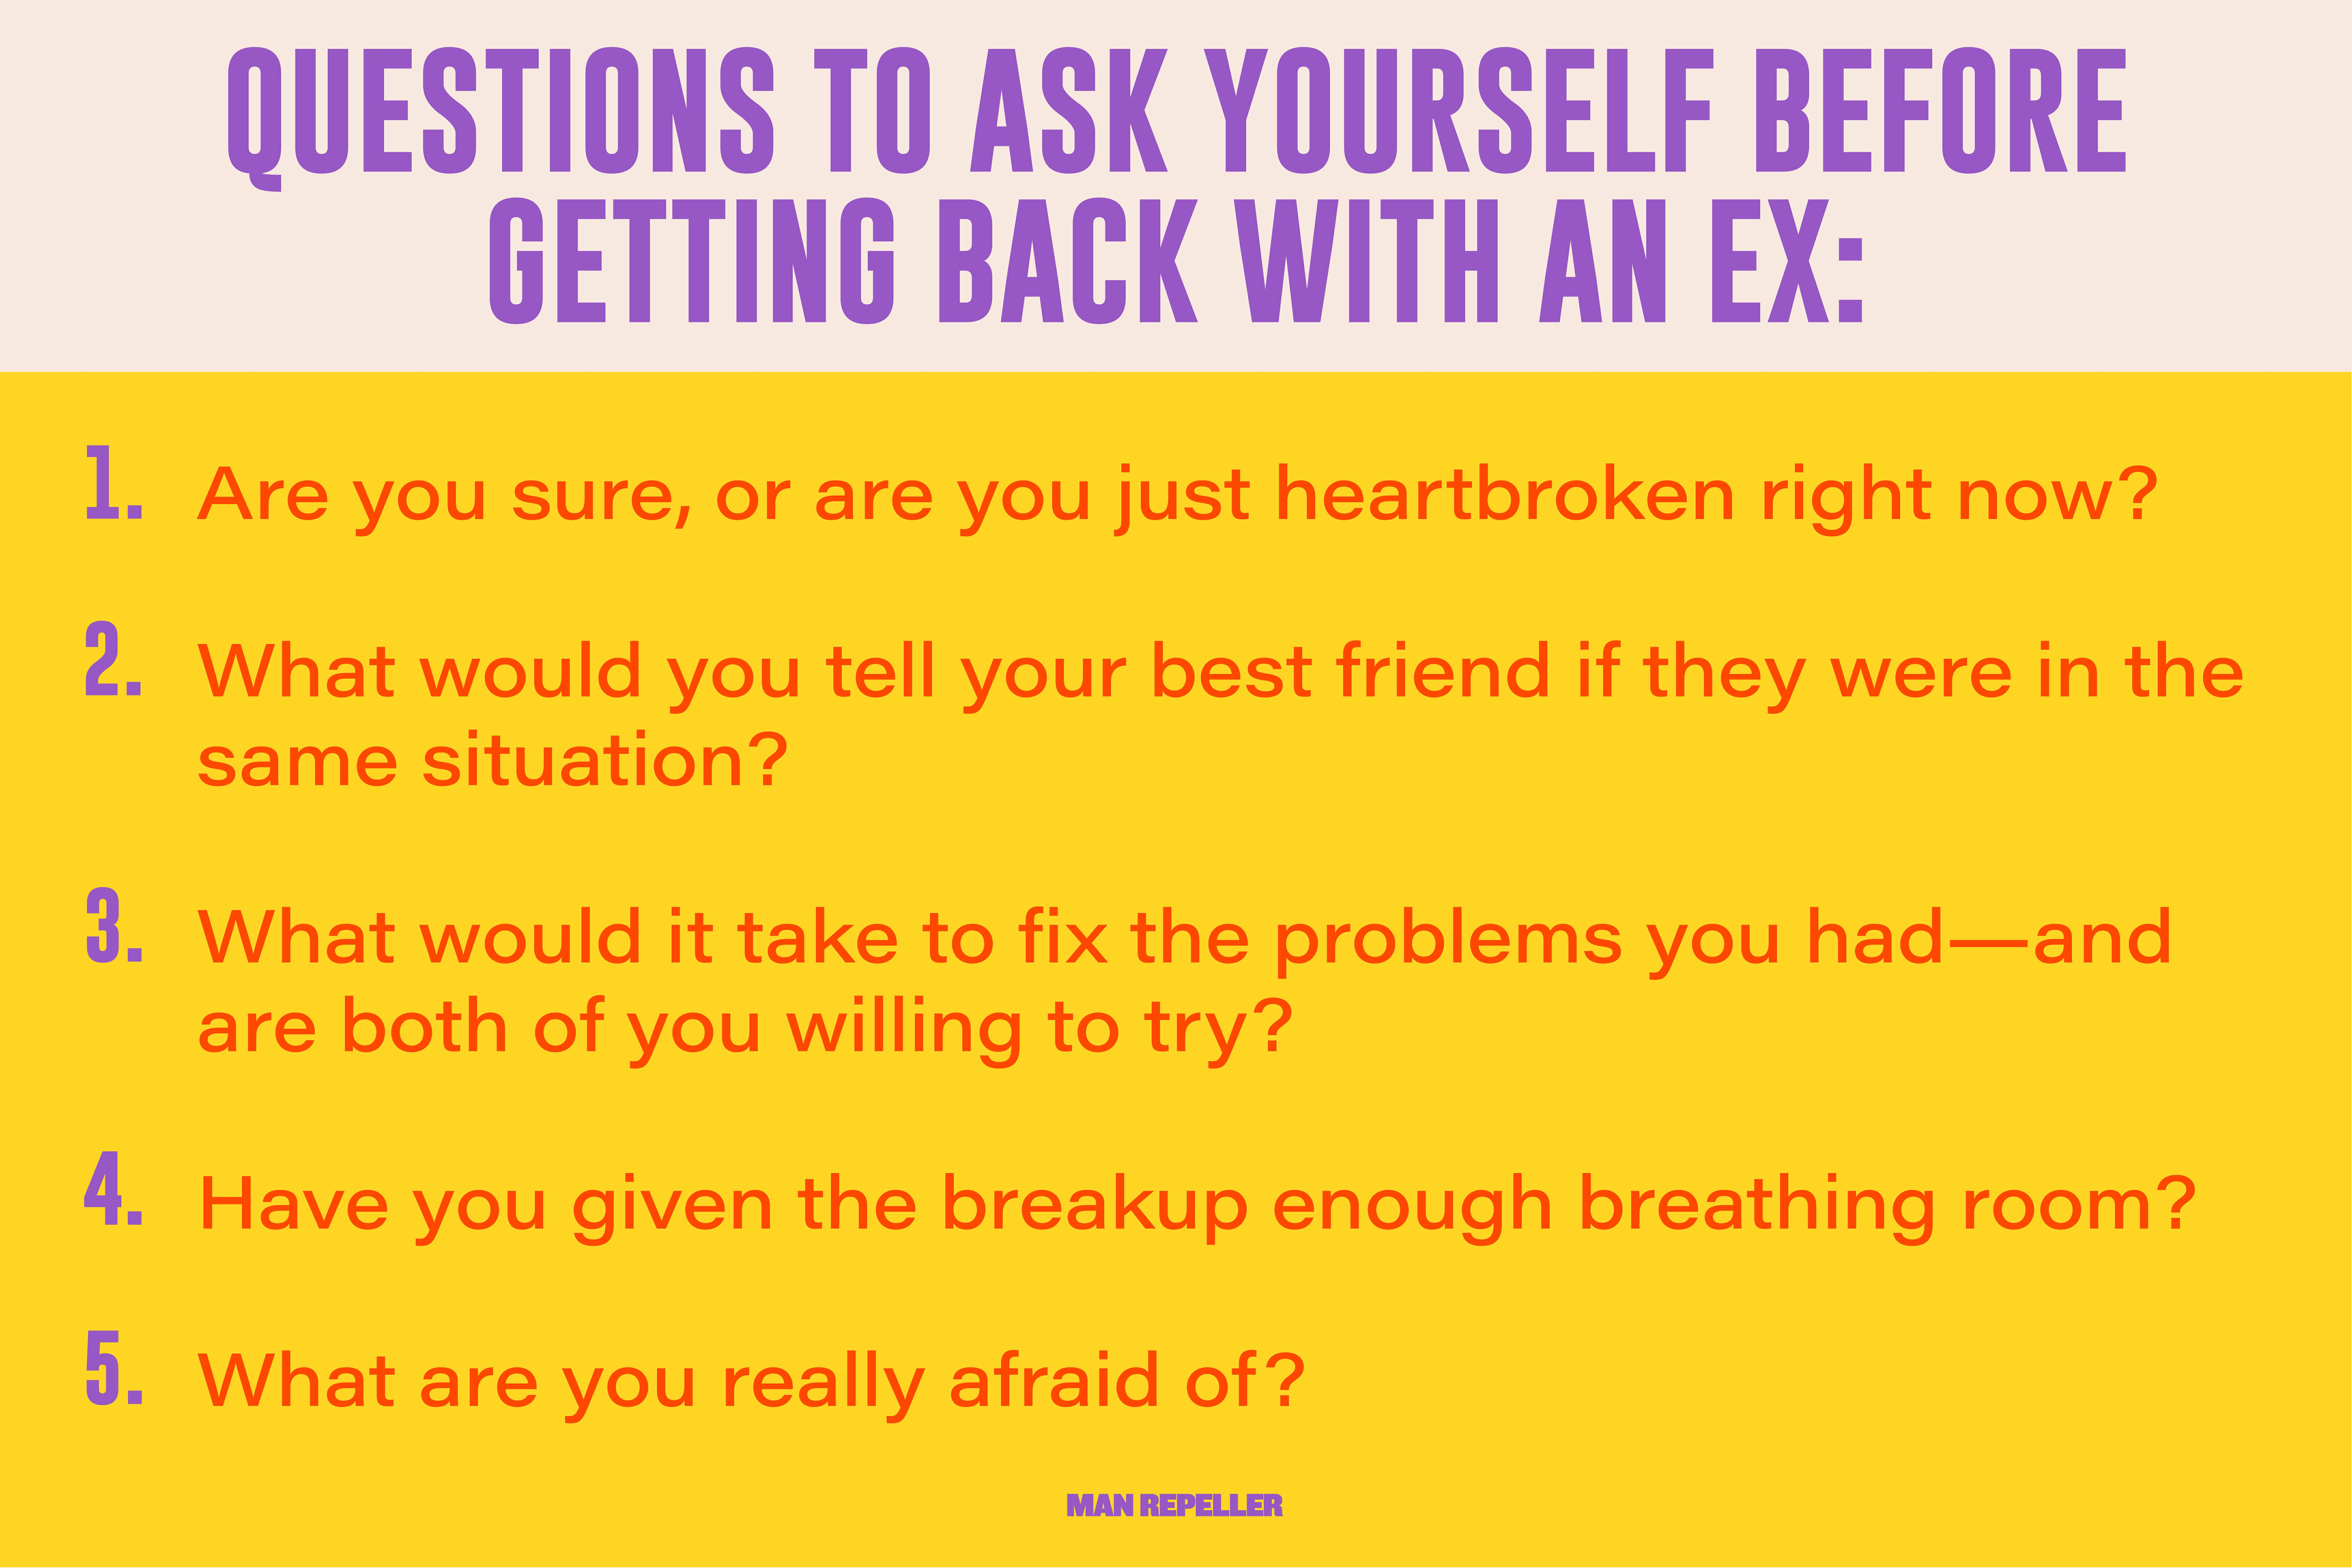 Questions to Ask Yourself Before Getting Back With an Ex: